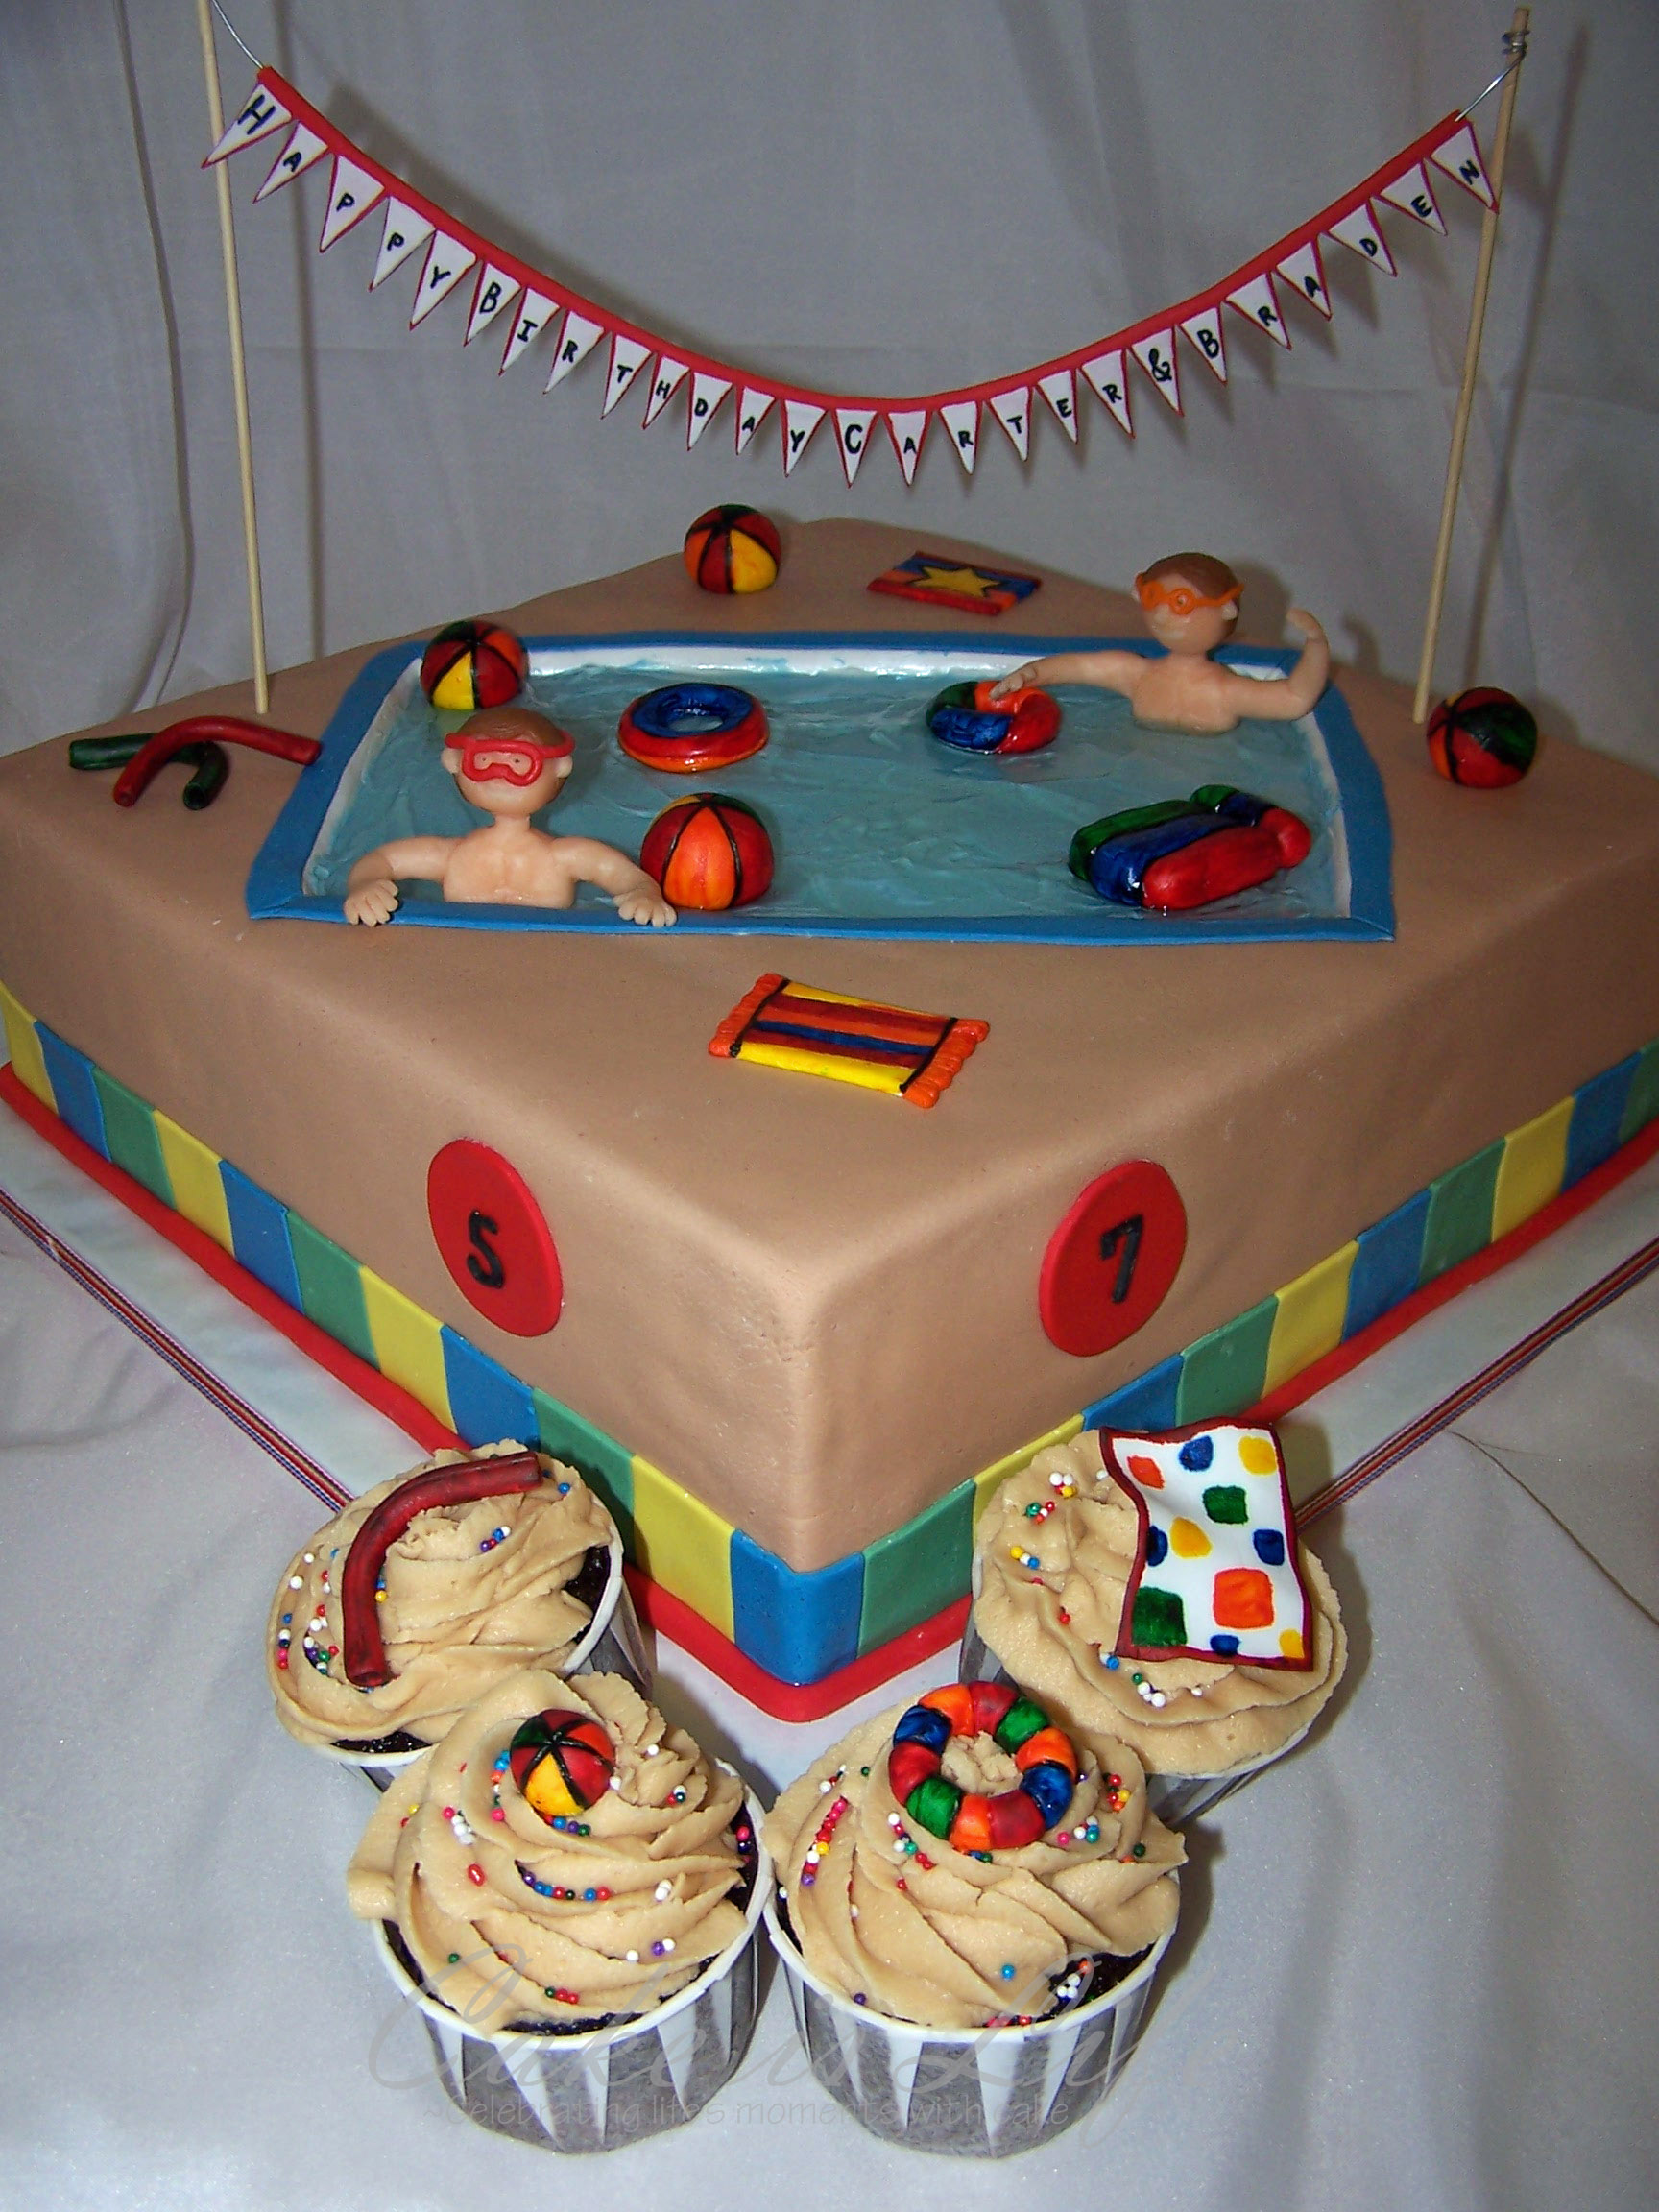 Pool Party Cakes Ideas Pool Party Birthday Cake